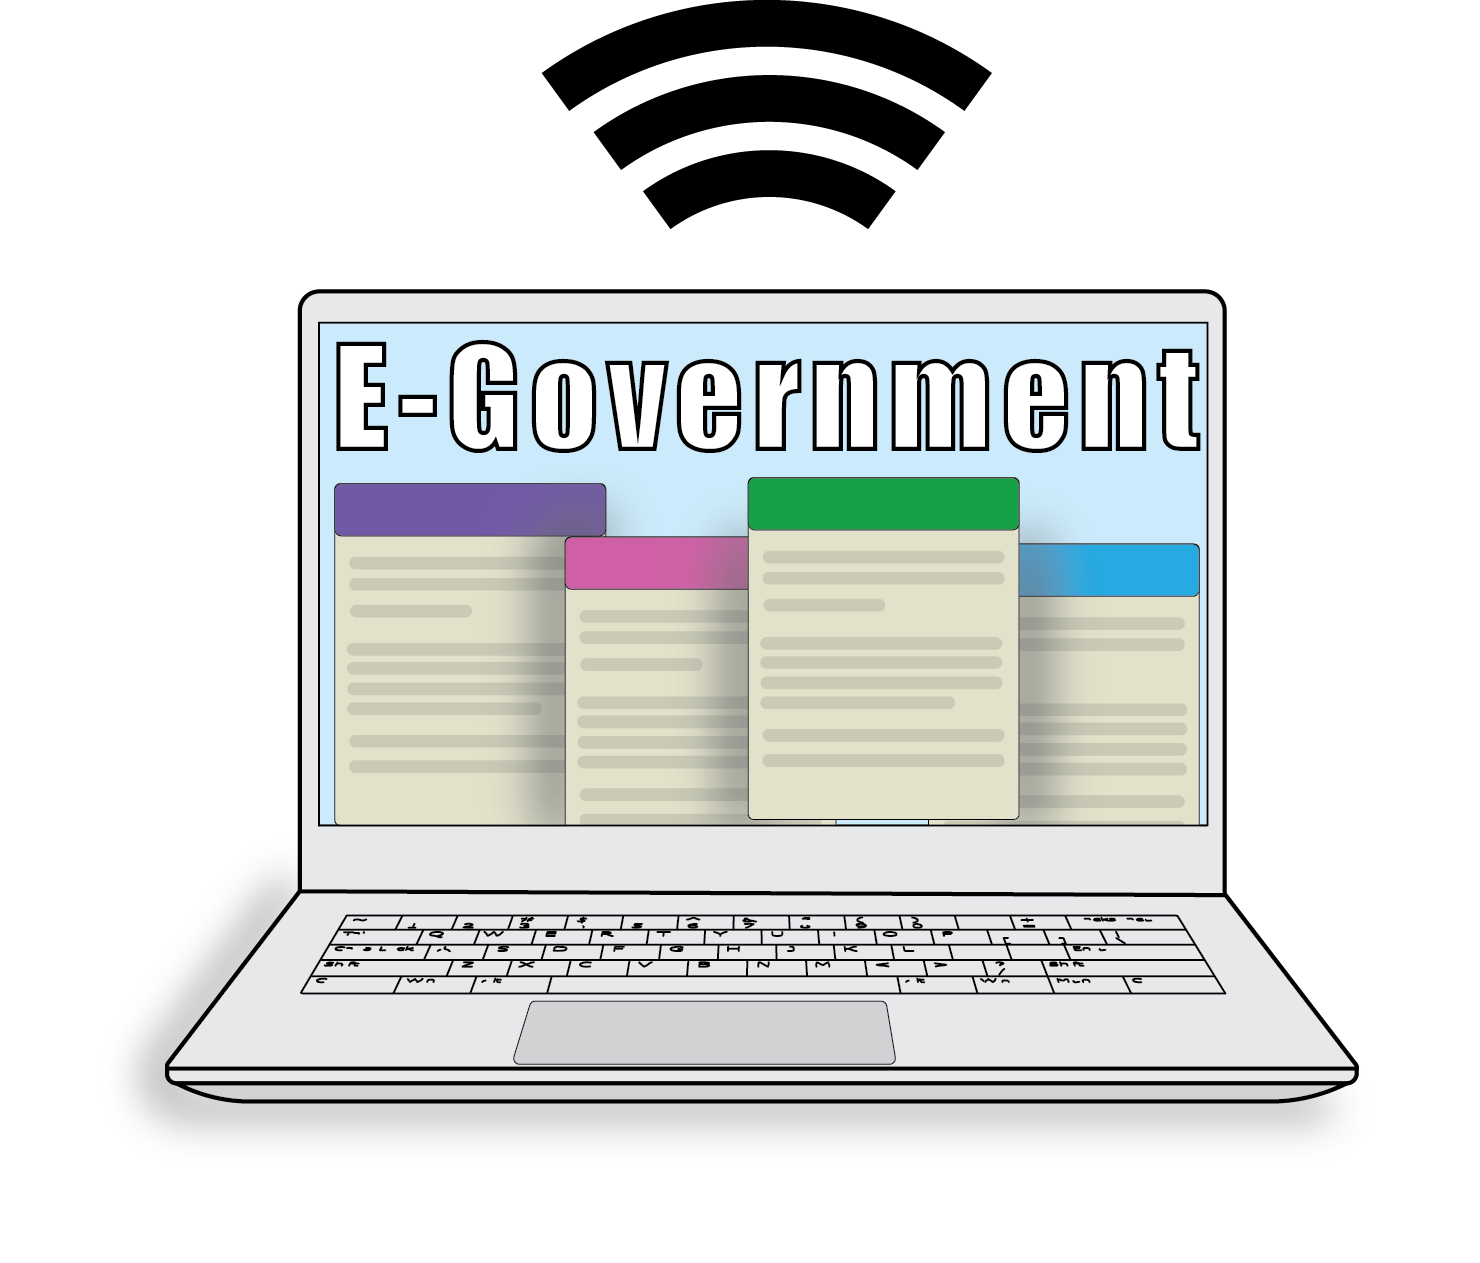 E-Government symbolized by laptop with documents and wi-fi symbol